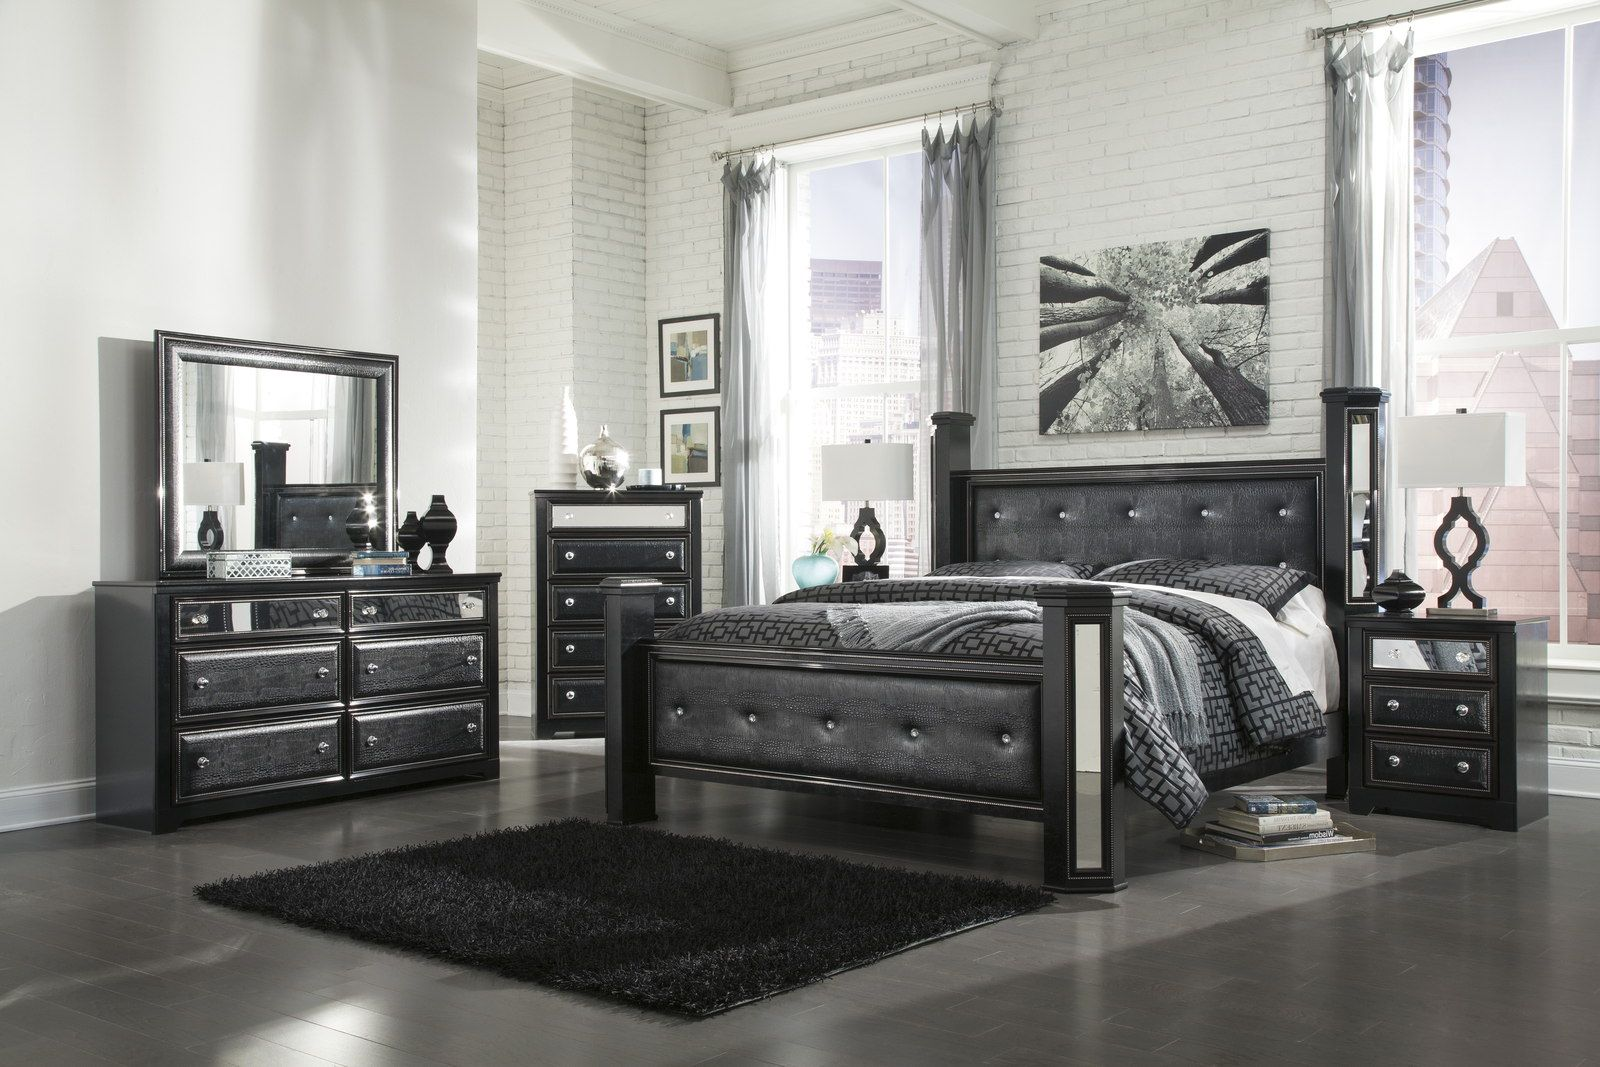 Ashley alamadyre queen upholstered poster bedroom set in - Black queen bedroom furniture set ...